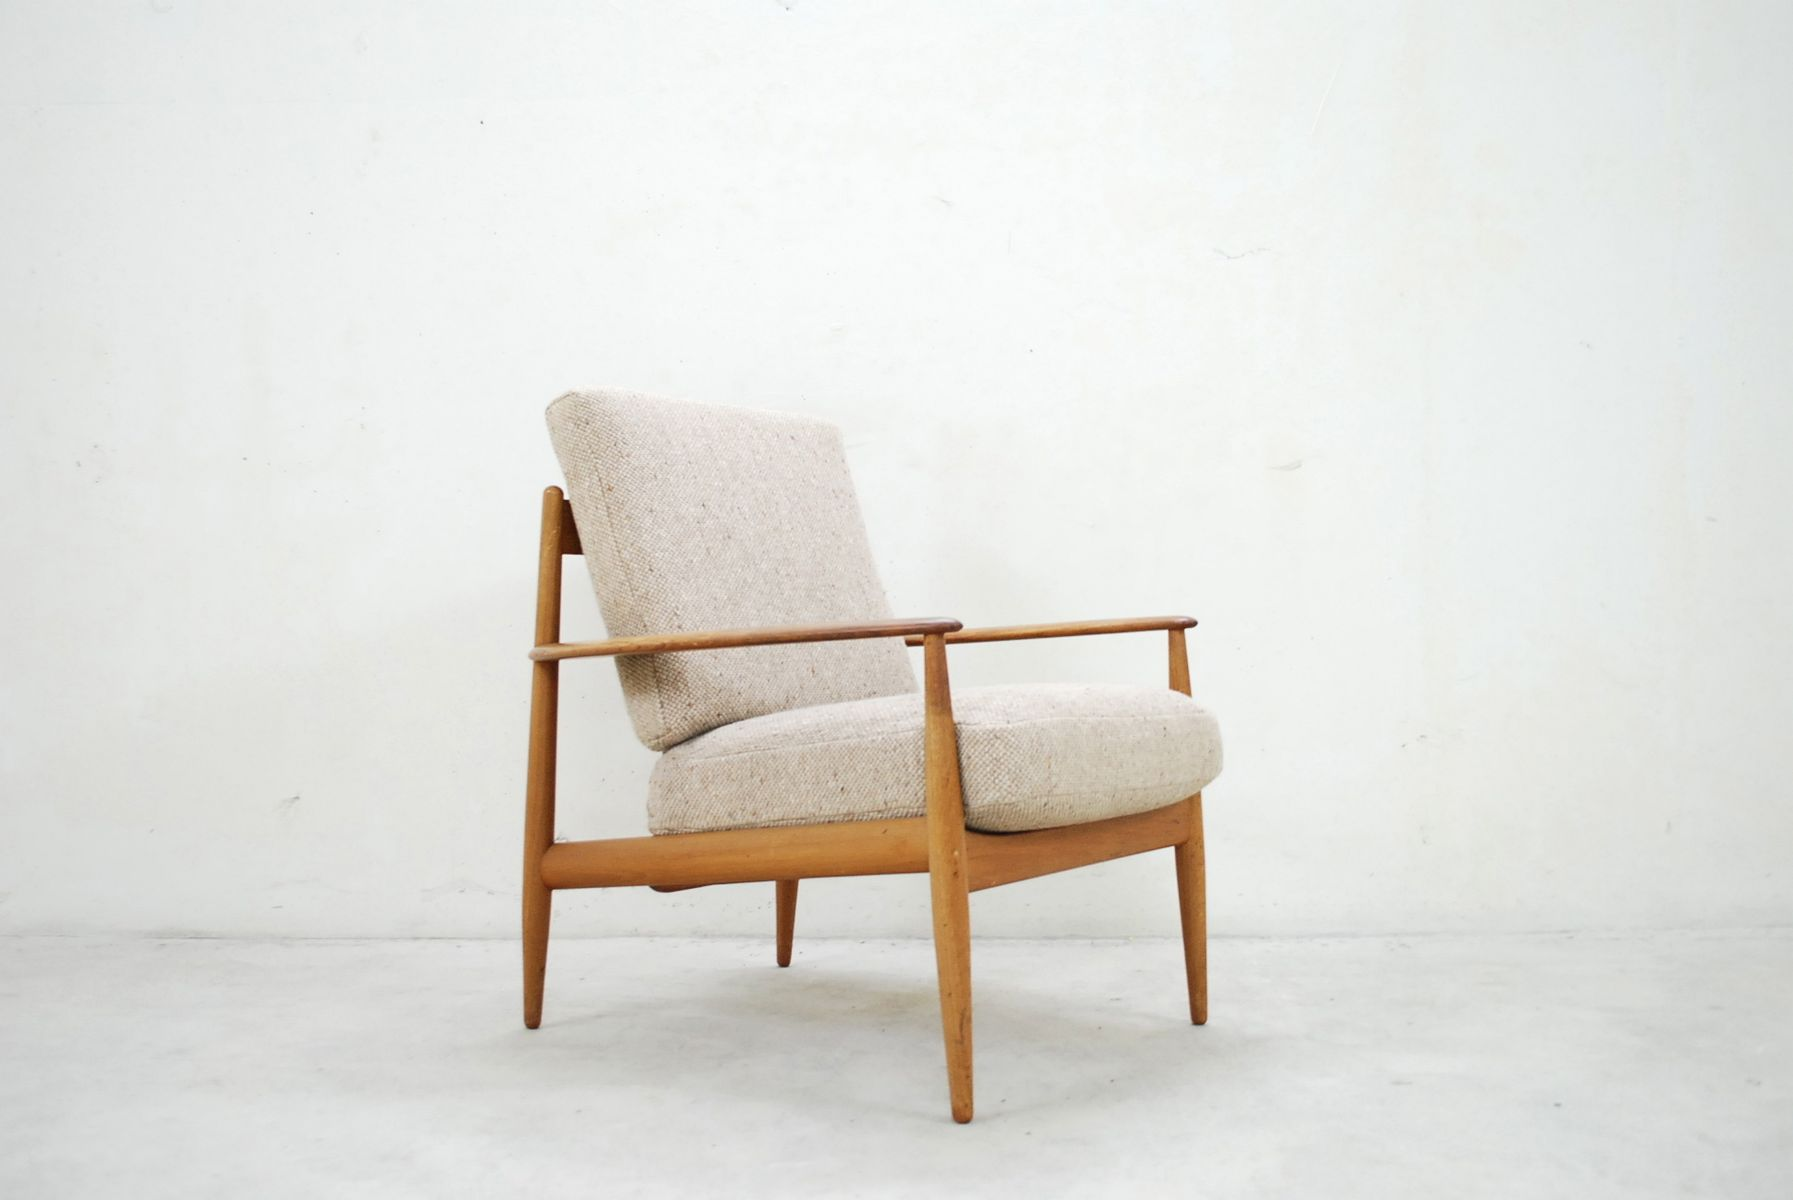 Captivating Danish Teak Easy Chair By Grete Jalk For France U0026 Son, 1965 For Sale At  Pamono